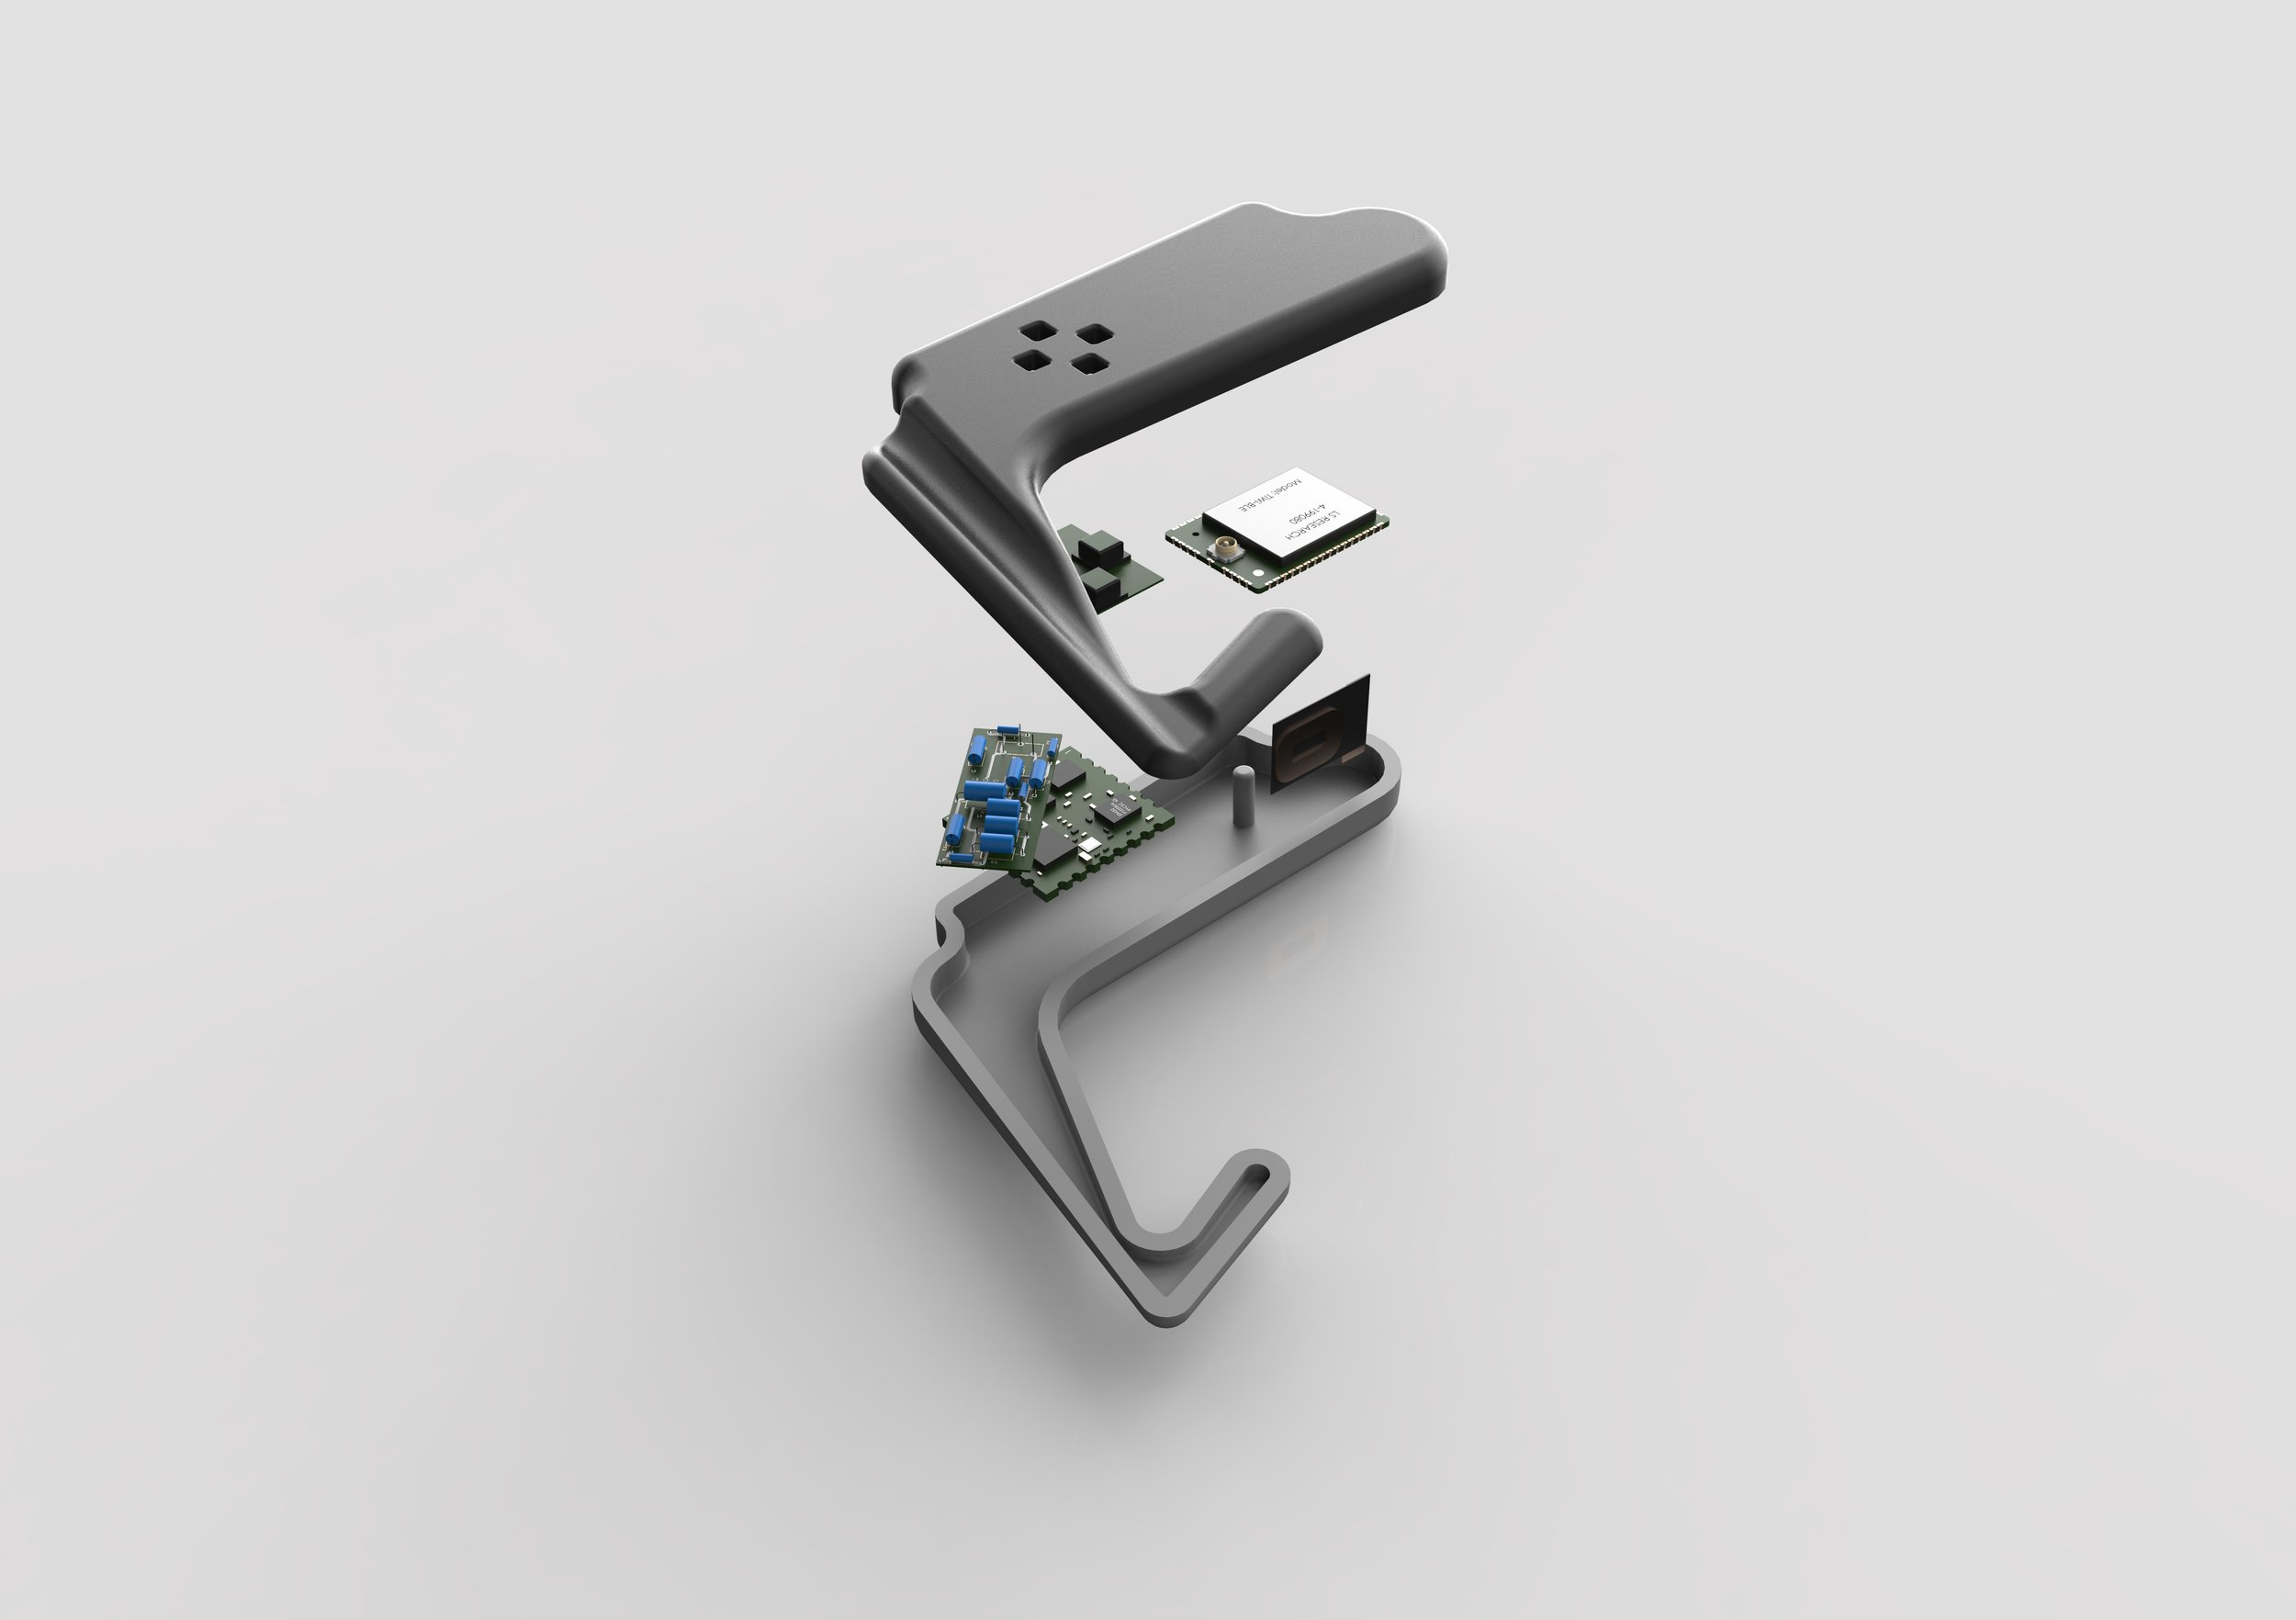 Exploded view of the ear piece